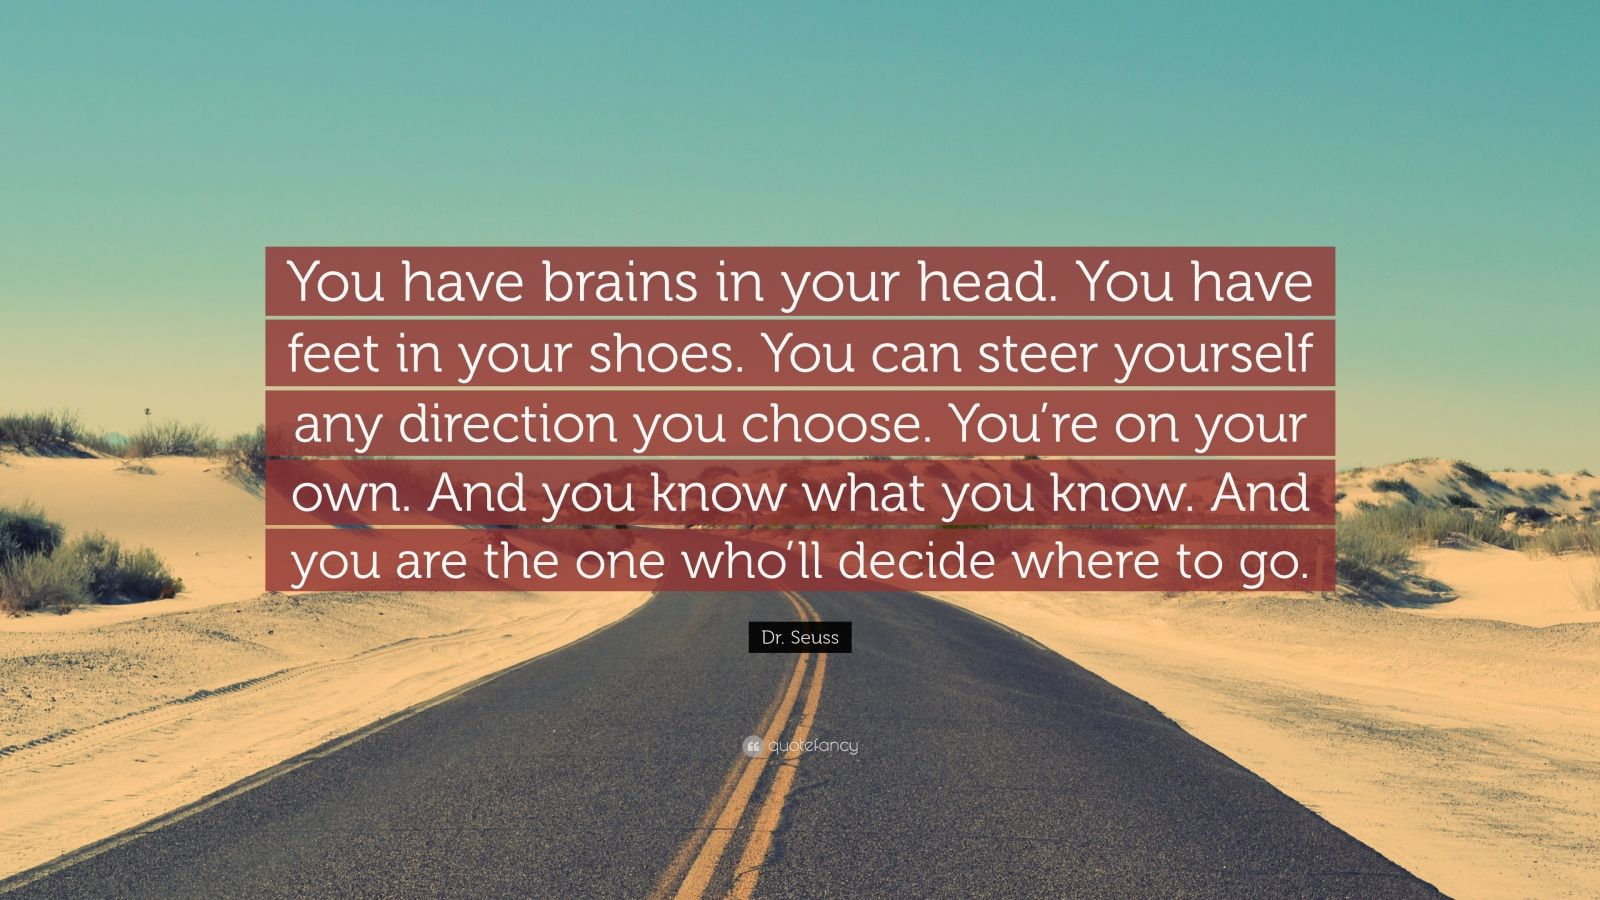 """Dr. Seuss Quote: """"You have brains in your head. You have feet in your shoes. You can steer yourself any direction you choose. You're on your own. And you know what you know. And you are the one who'll decide where to go."""""""